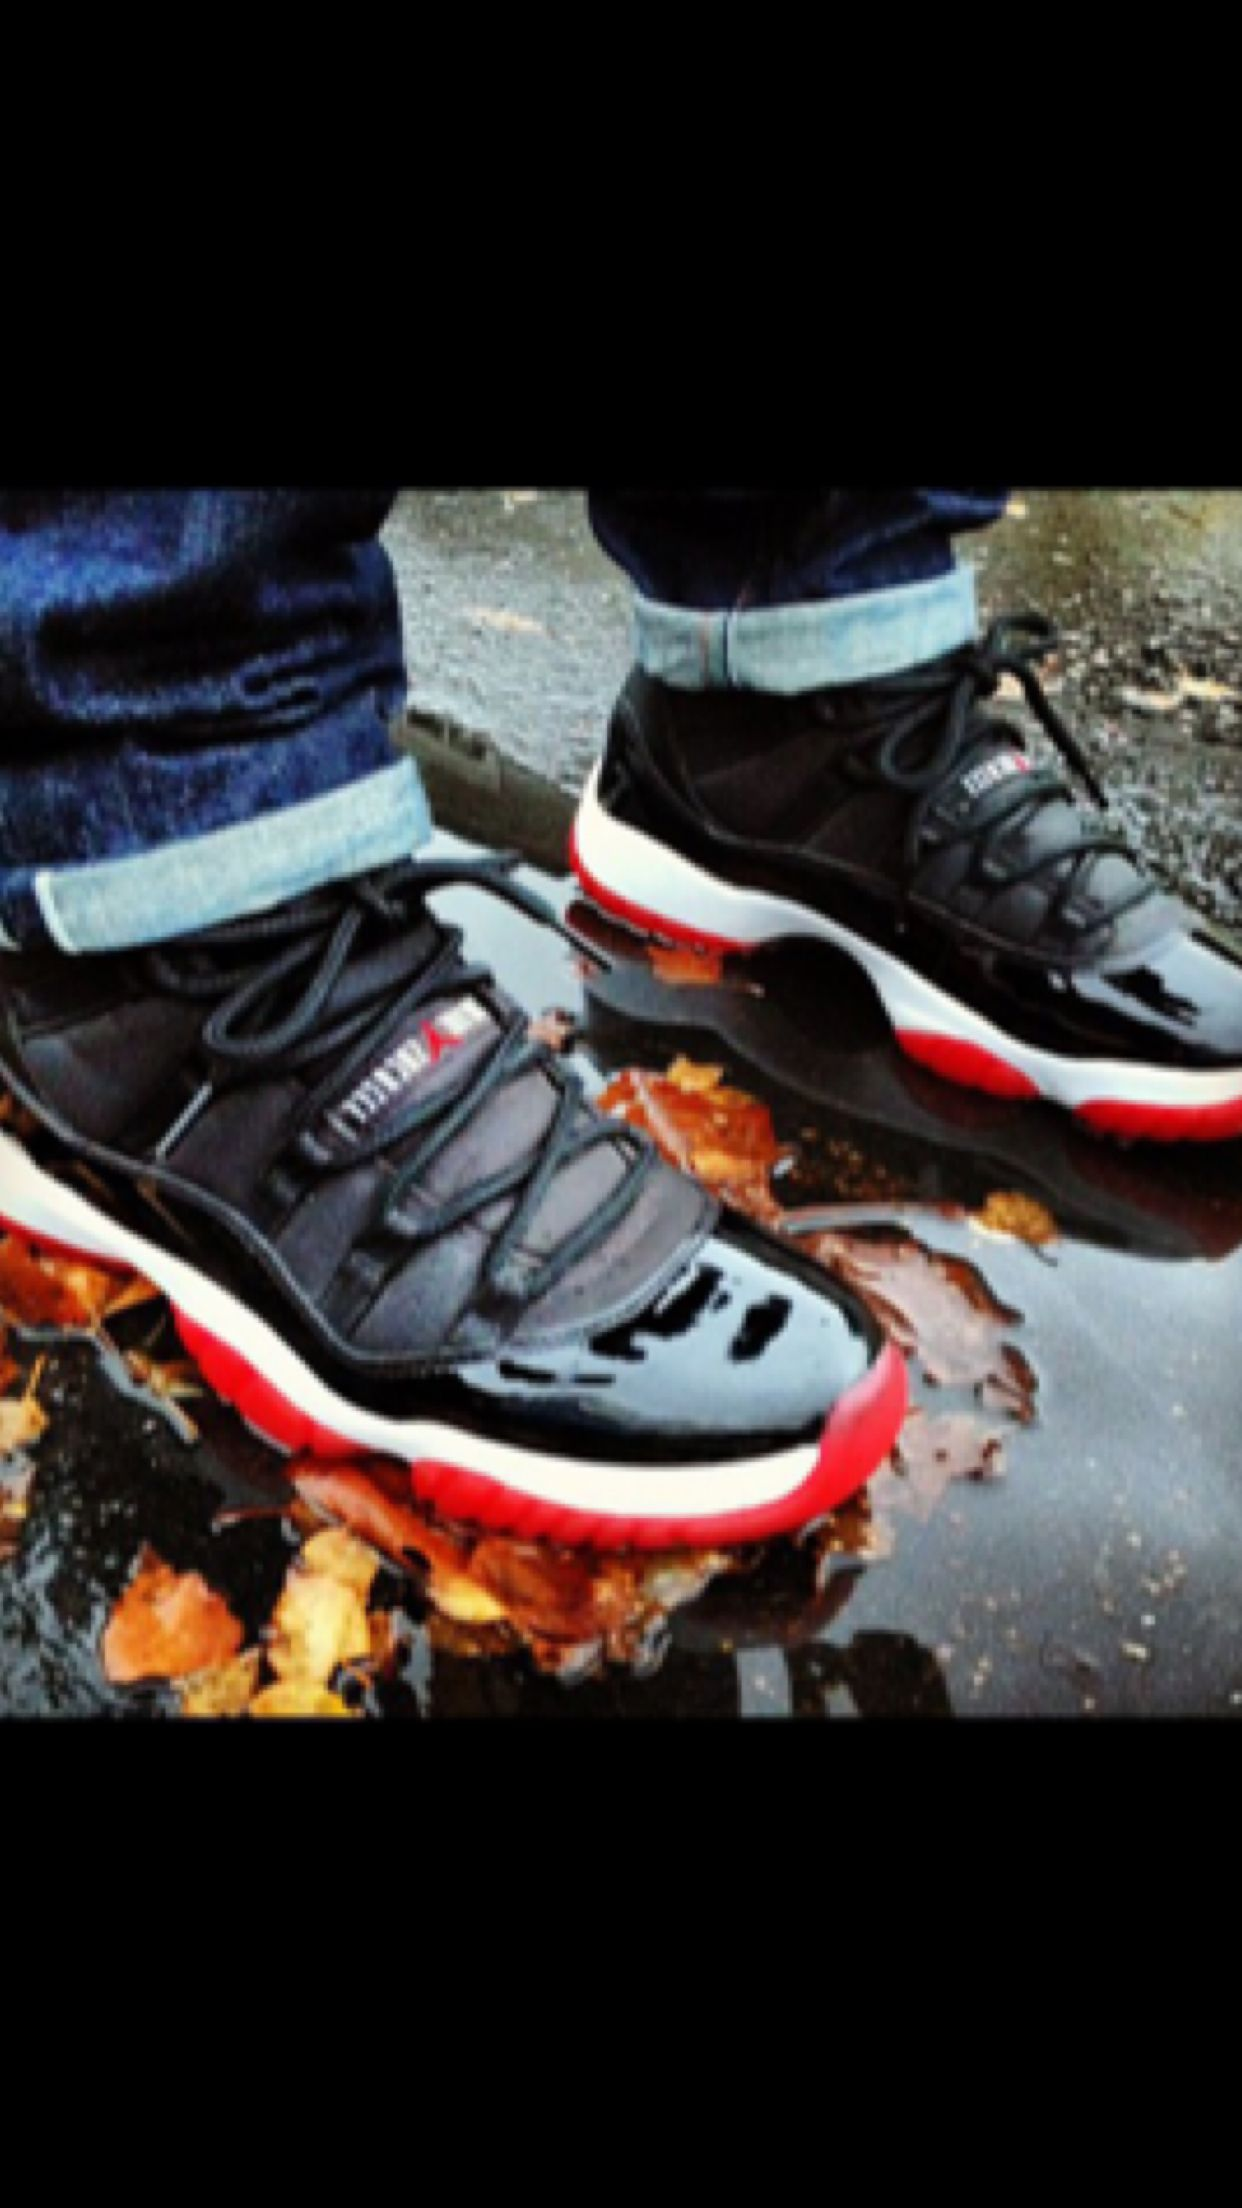 ed3ea71a944a13 Authentic Air Jordan 11 Bred Playoffs Limited quantity Sizes 7-13 US Mens  Order